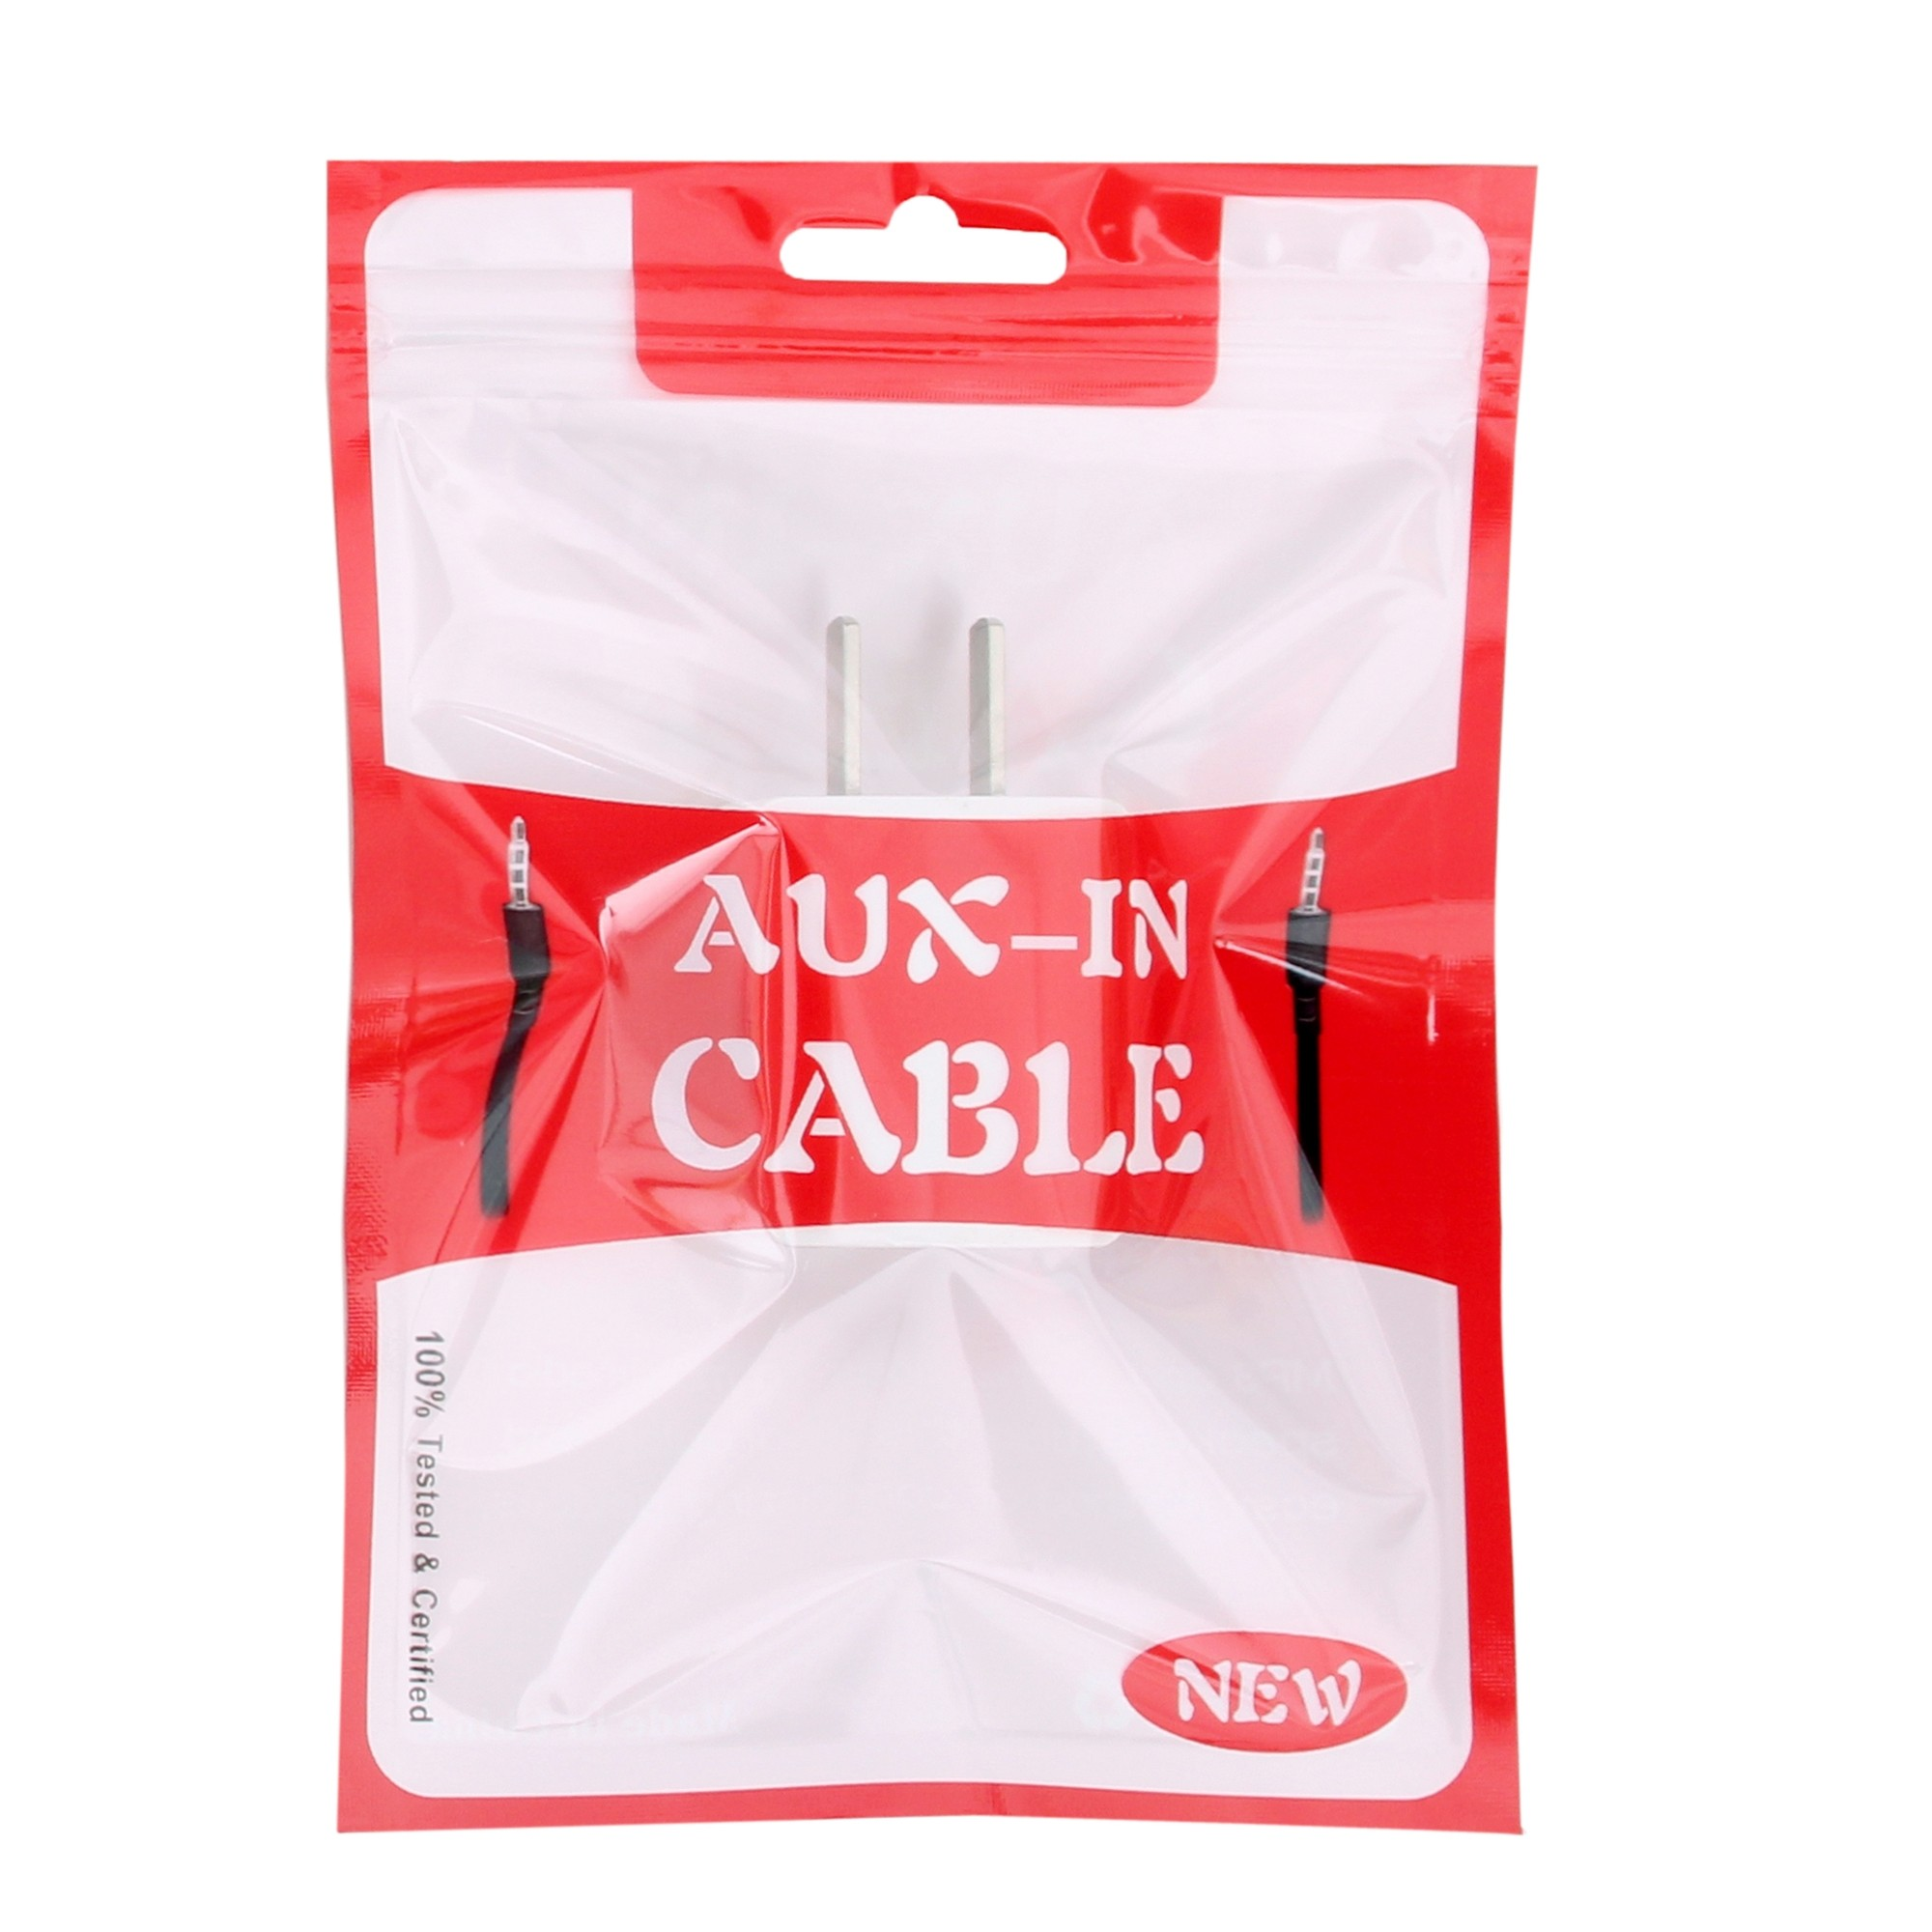 Red Clear Display Aux-In Cable Flat Ziplock Bag with Butterfly Hang-Hole 10 cm x 15 cm [4 inches x 6 inches] (500 Bags/Lot)